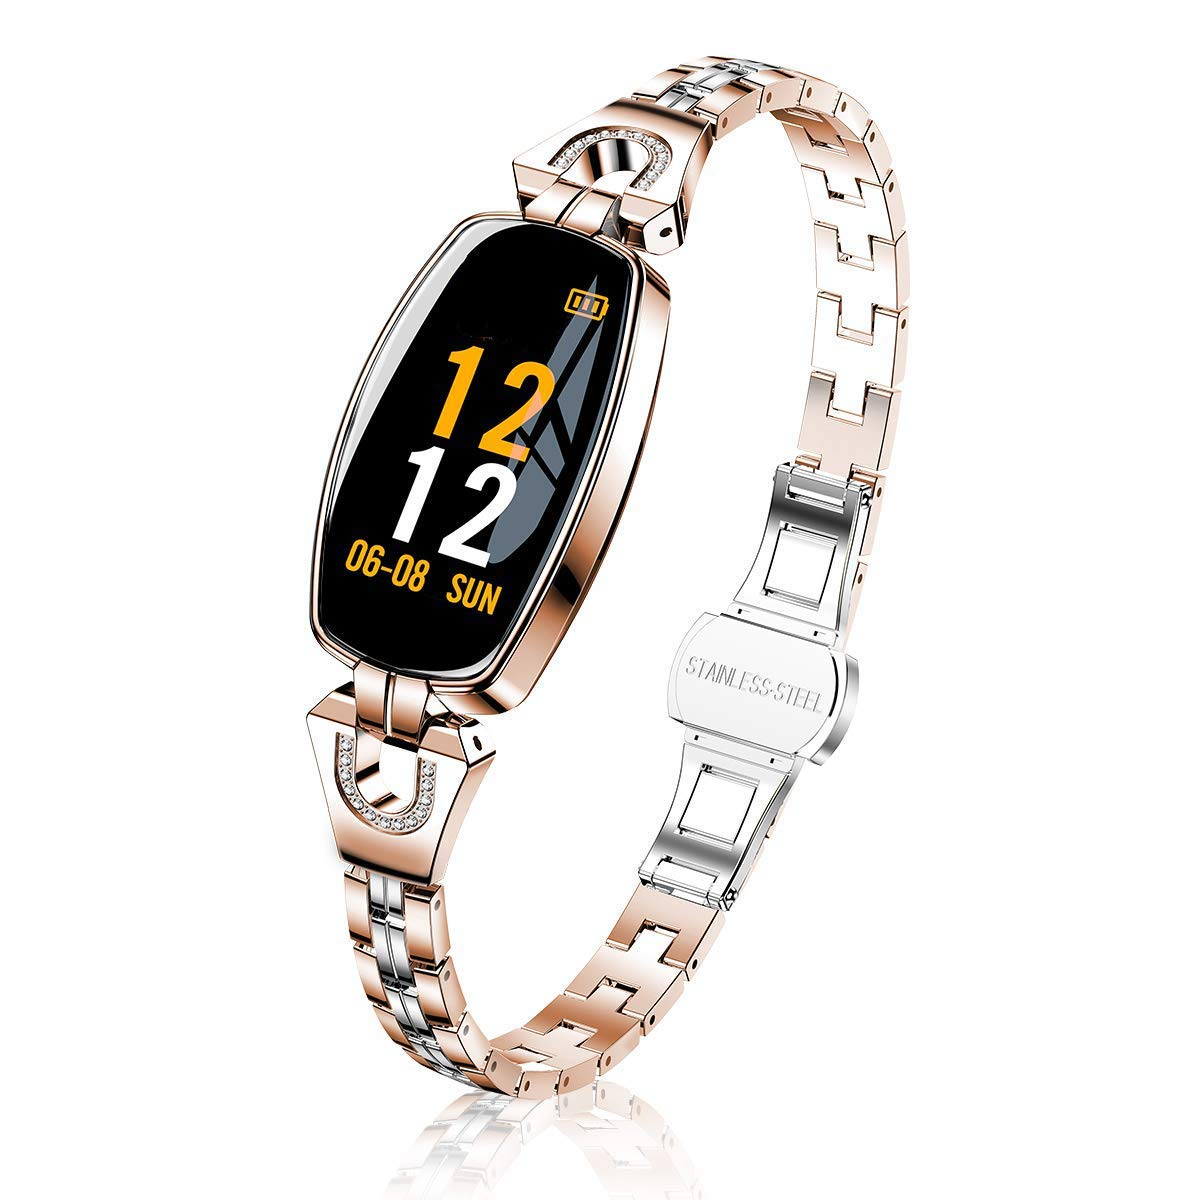 TMYIOYC Activity Tracker, Fitness Tracker with Pedometer, Heart Rate Monitor, Calorie Counter, Anti-Lost, Fitness Bracelet Waterproof Smart Fitness Band for Female and Sports Lovers